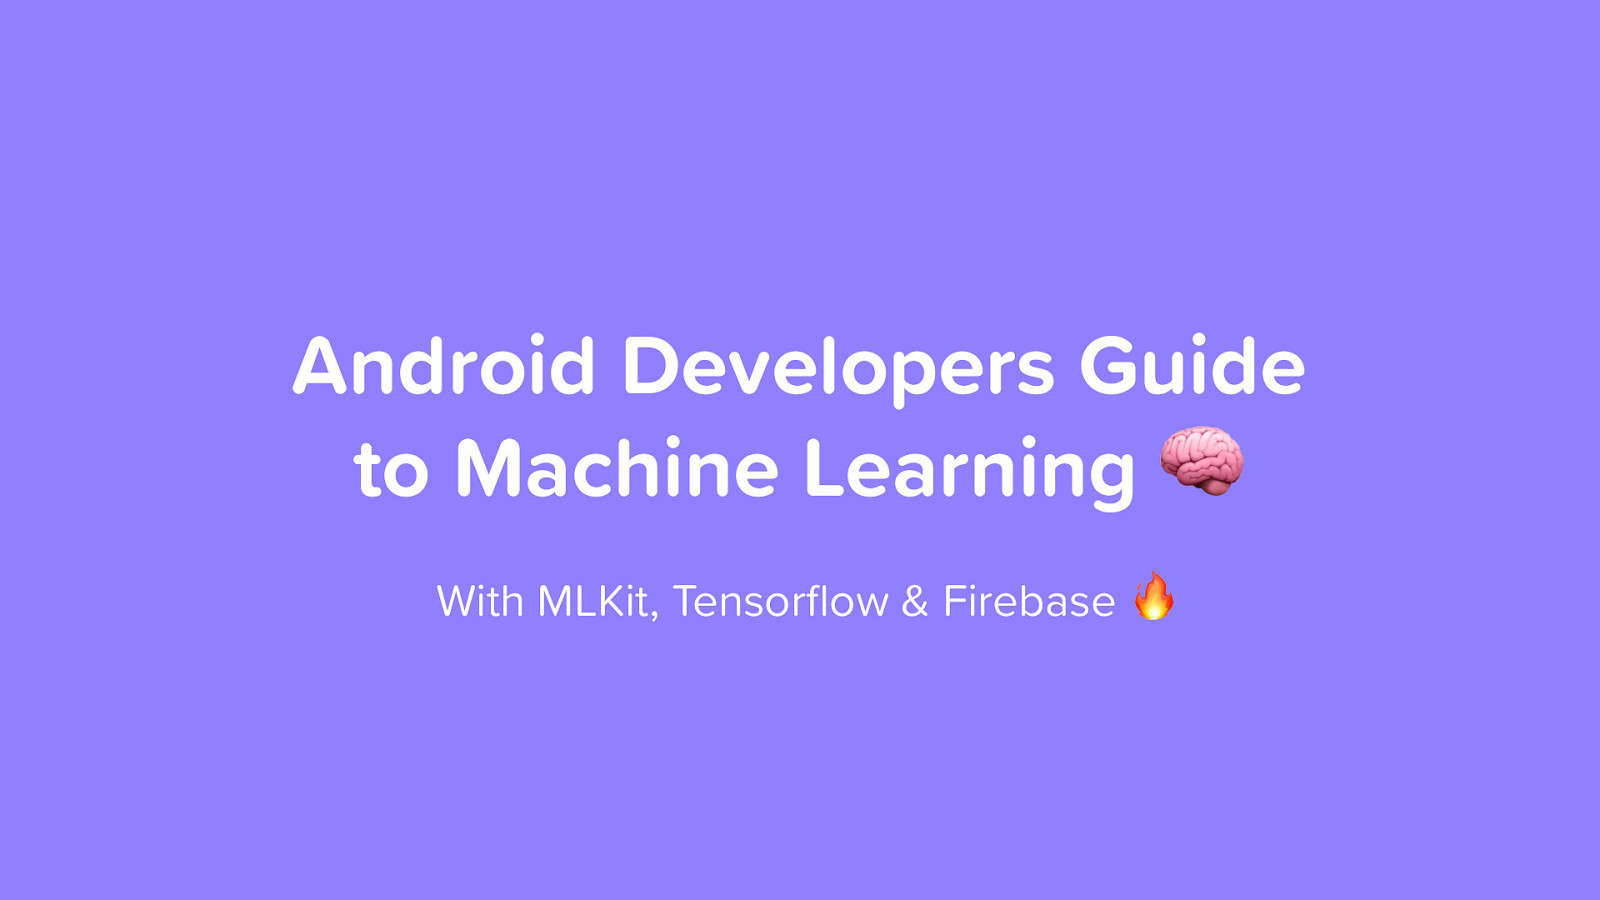 Android Developers Guide to Machine Learning